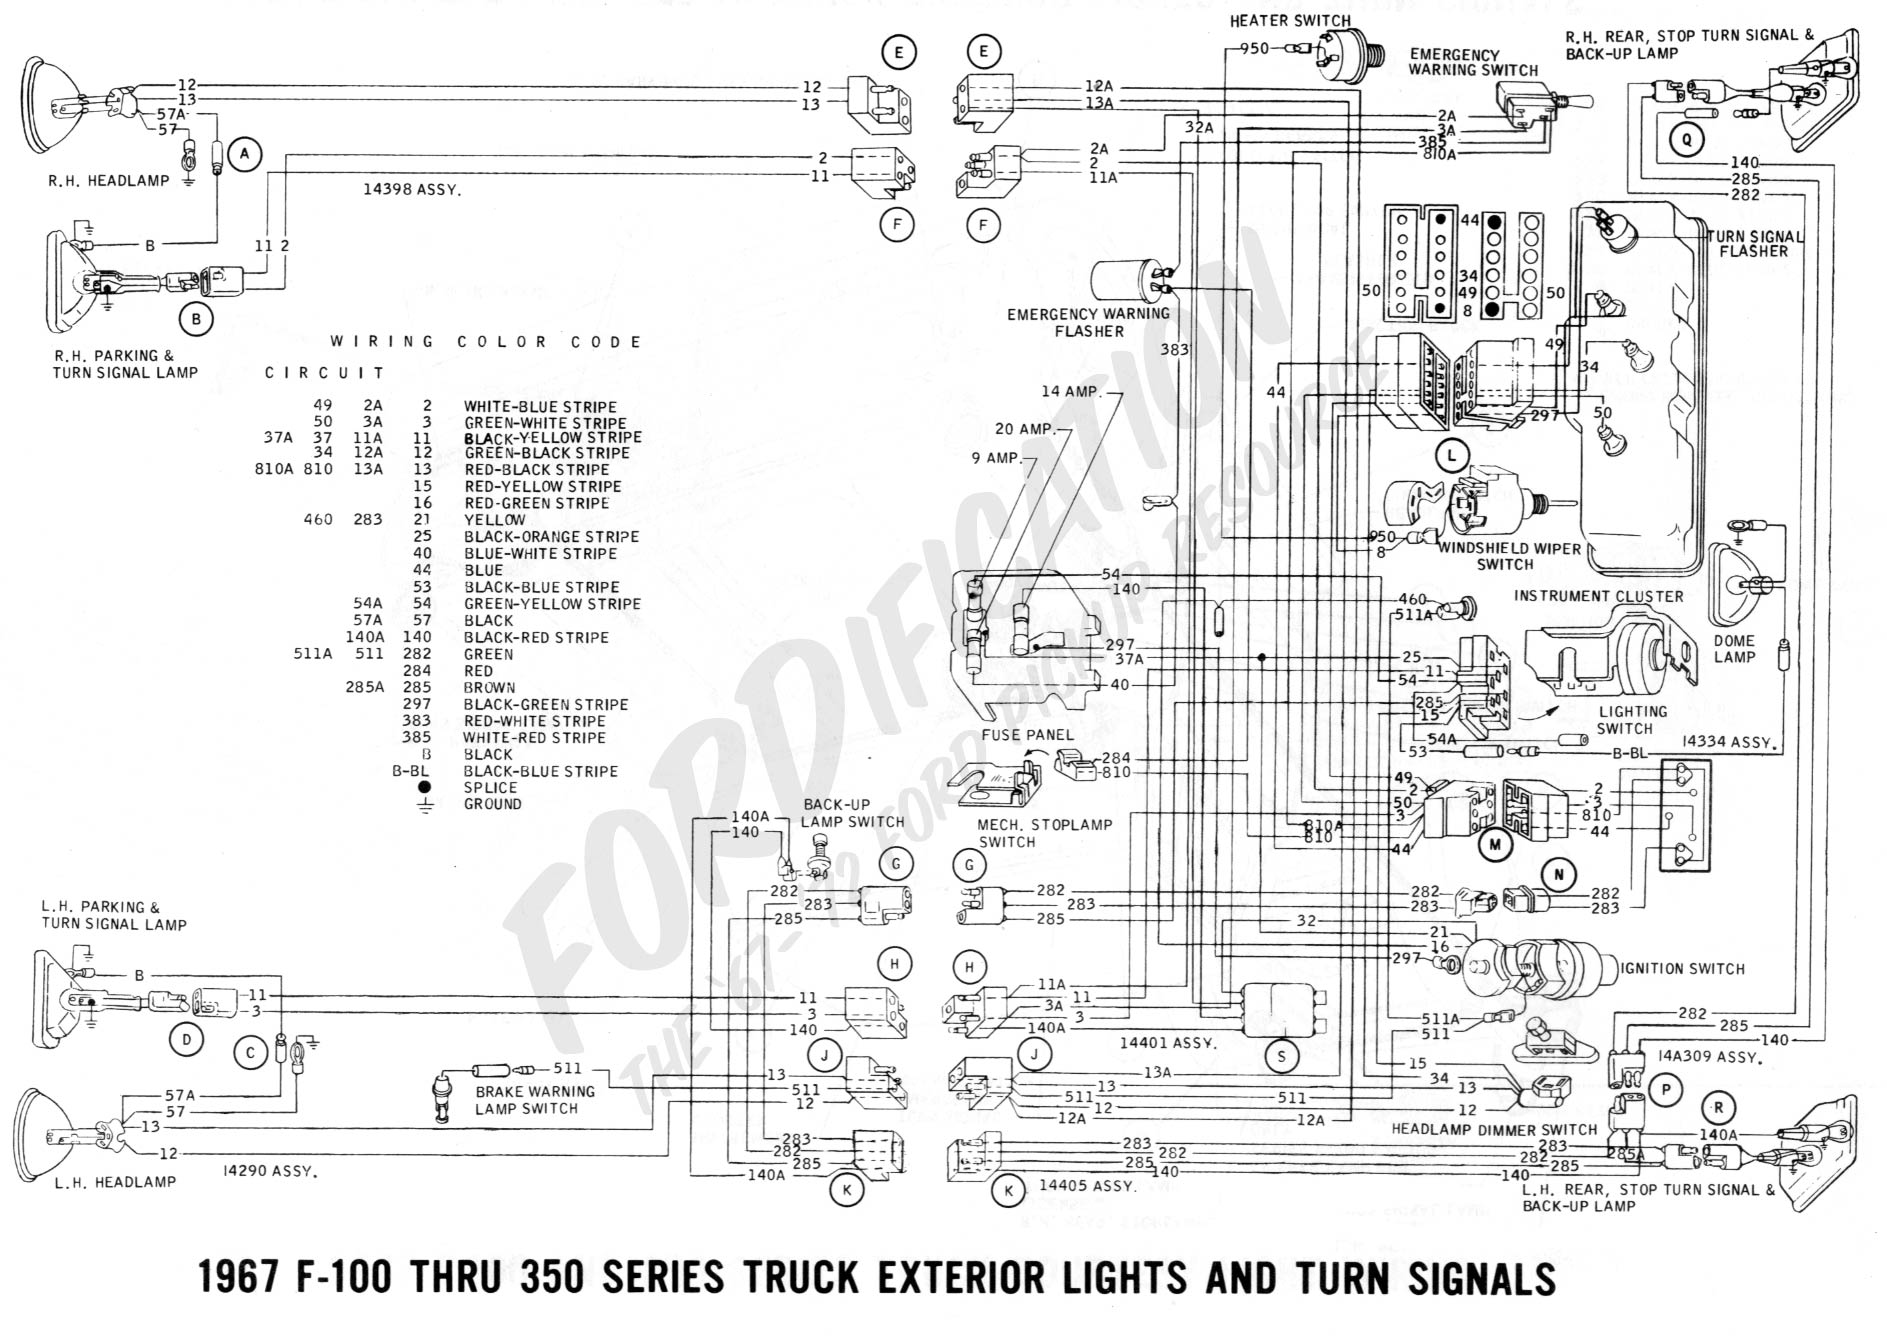 1967 f-100 thru f-350 exterior lights and turn signals - 02